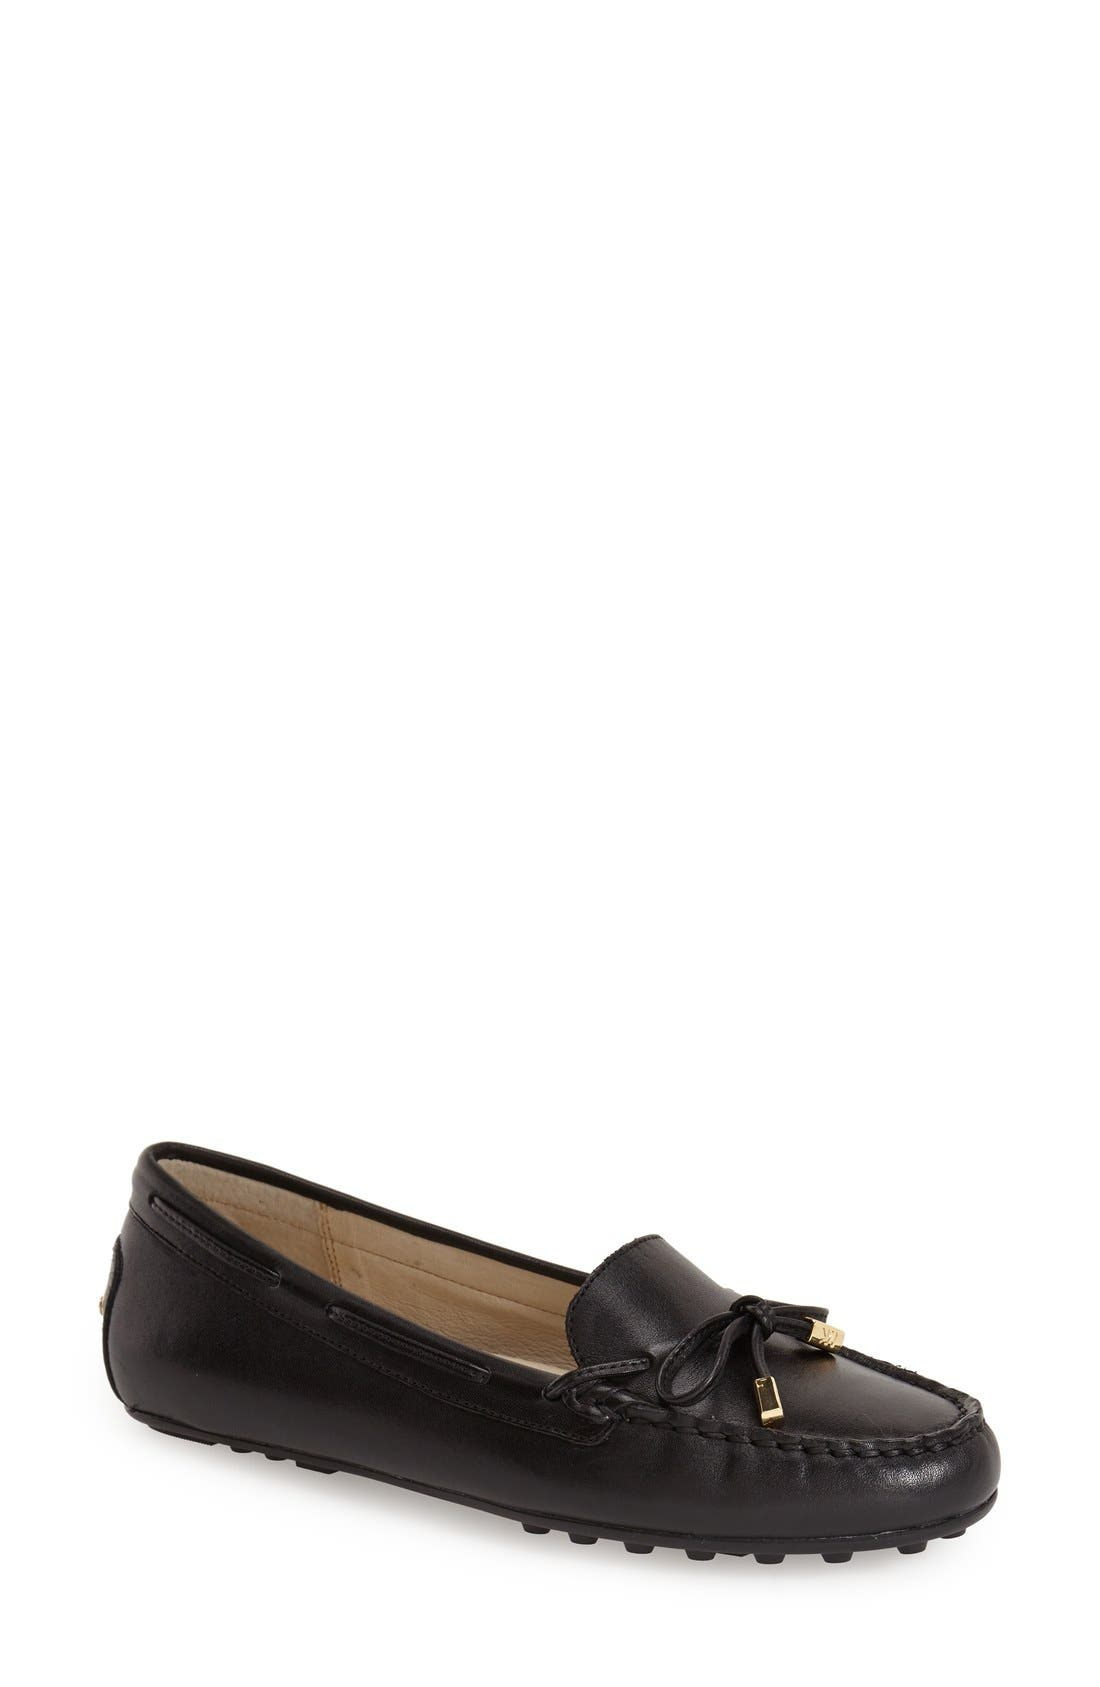 08758707a4f9 Buy michael kors oxfords   OFF65% Discounted